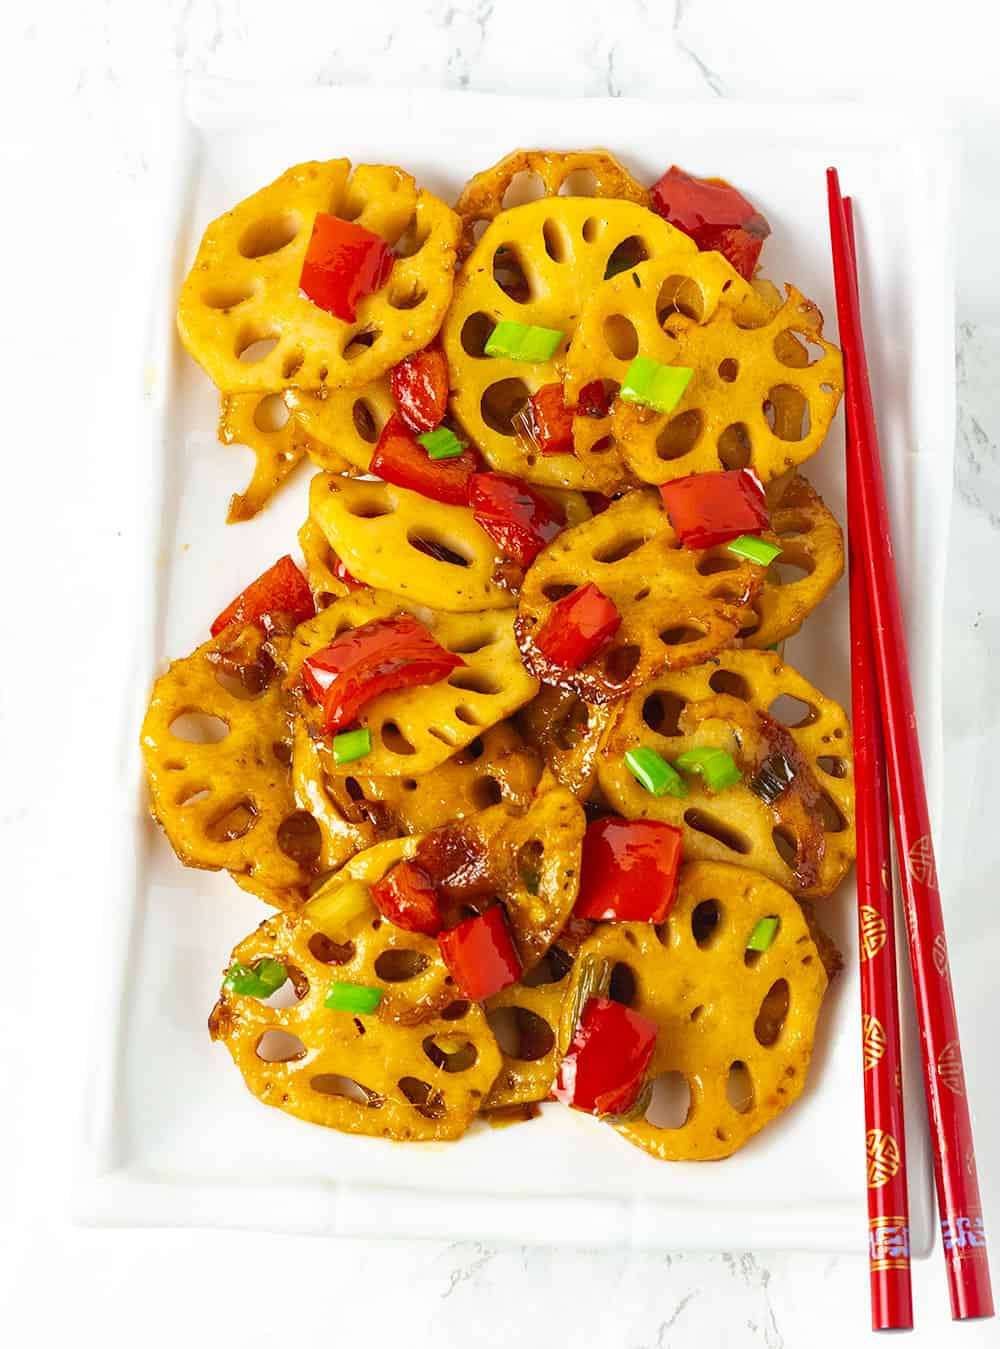 Stir fry lotus on a white platter with red chopsticks, red pepper, green onions